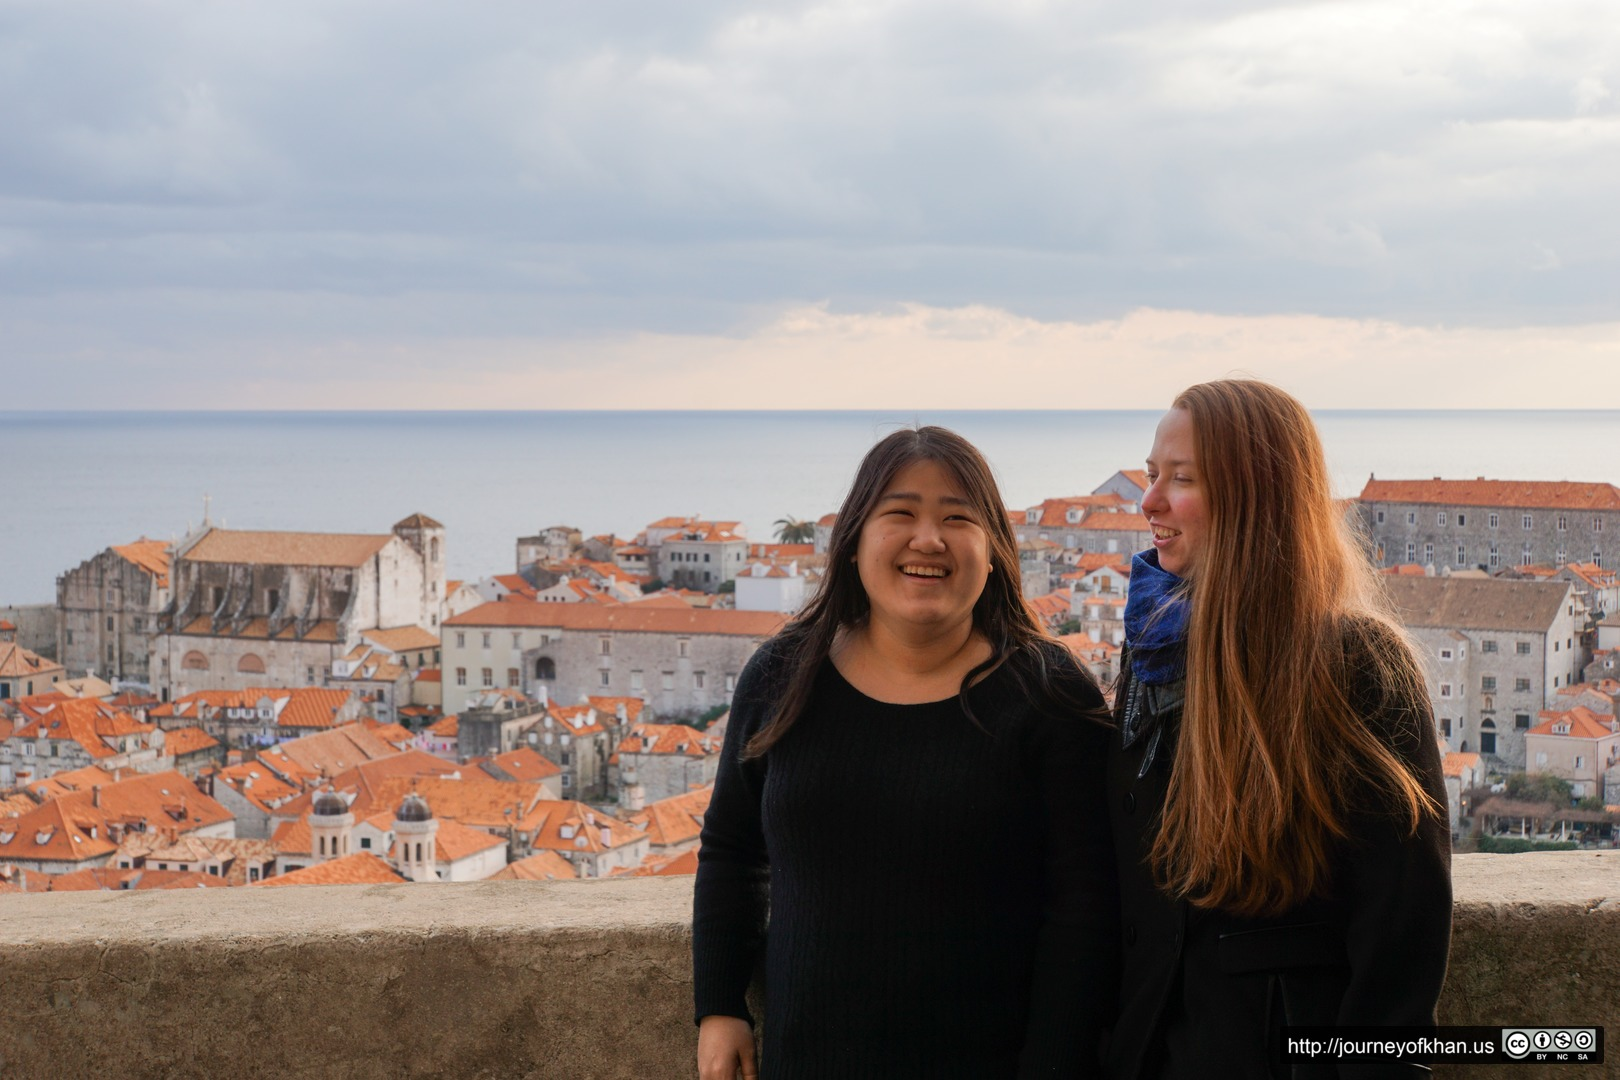 Amy and Kendra in Dubrovnik